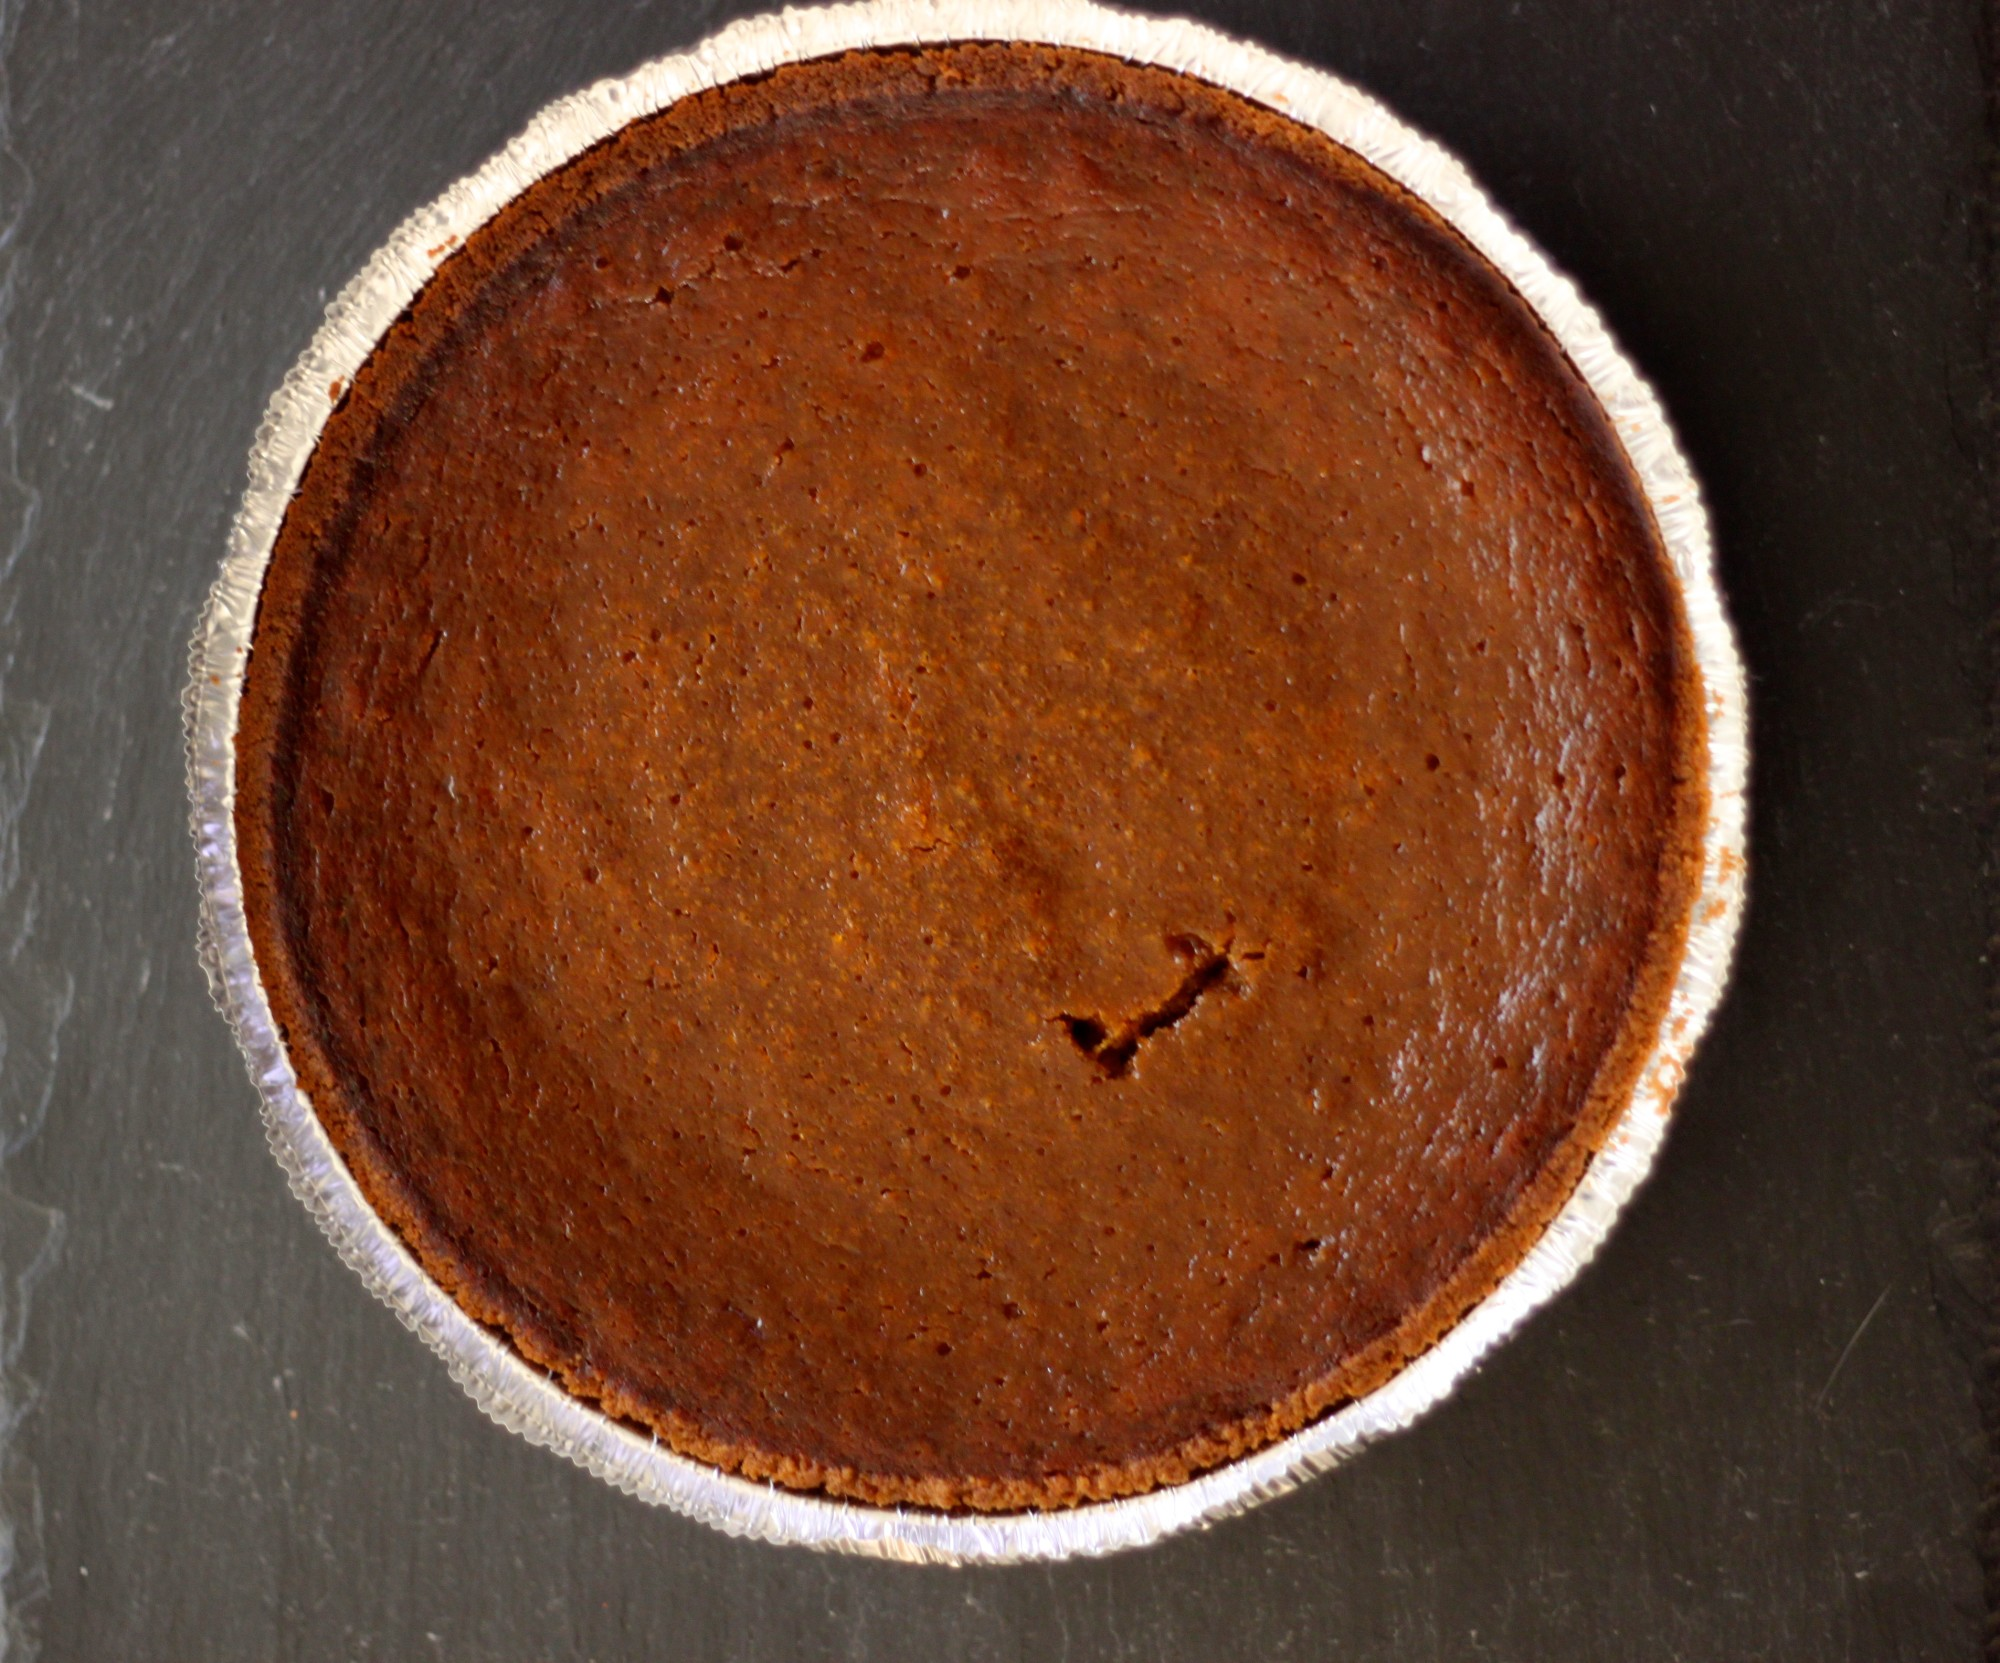 National Pumpkin Pie Day | Butterscotch Pumpkin Pie